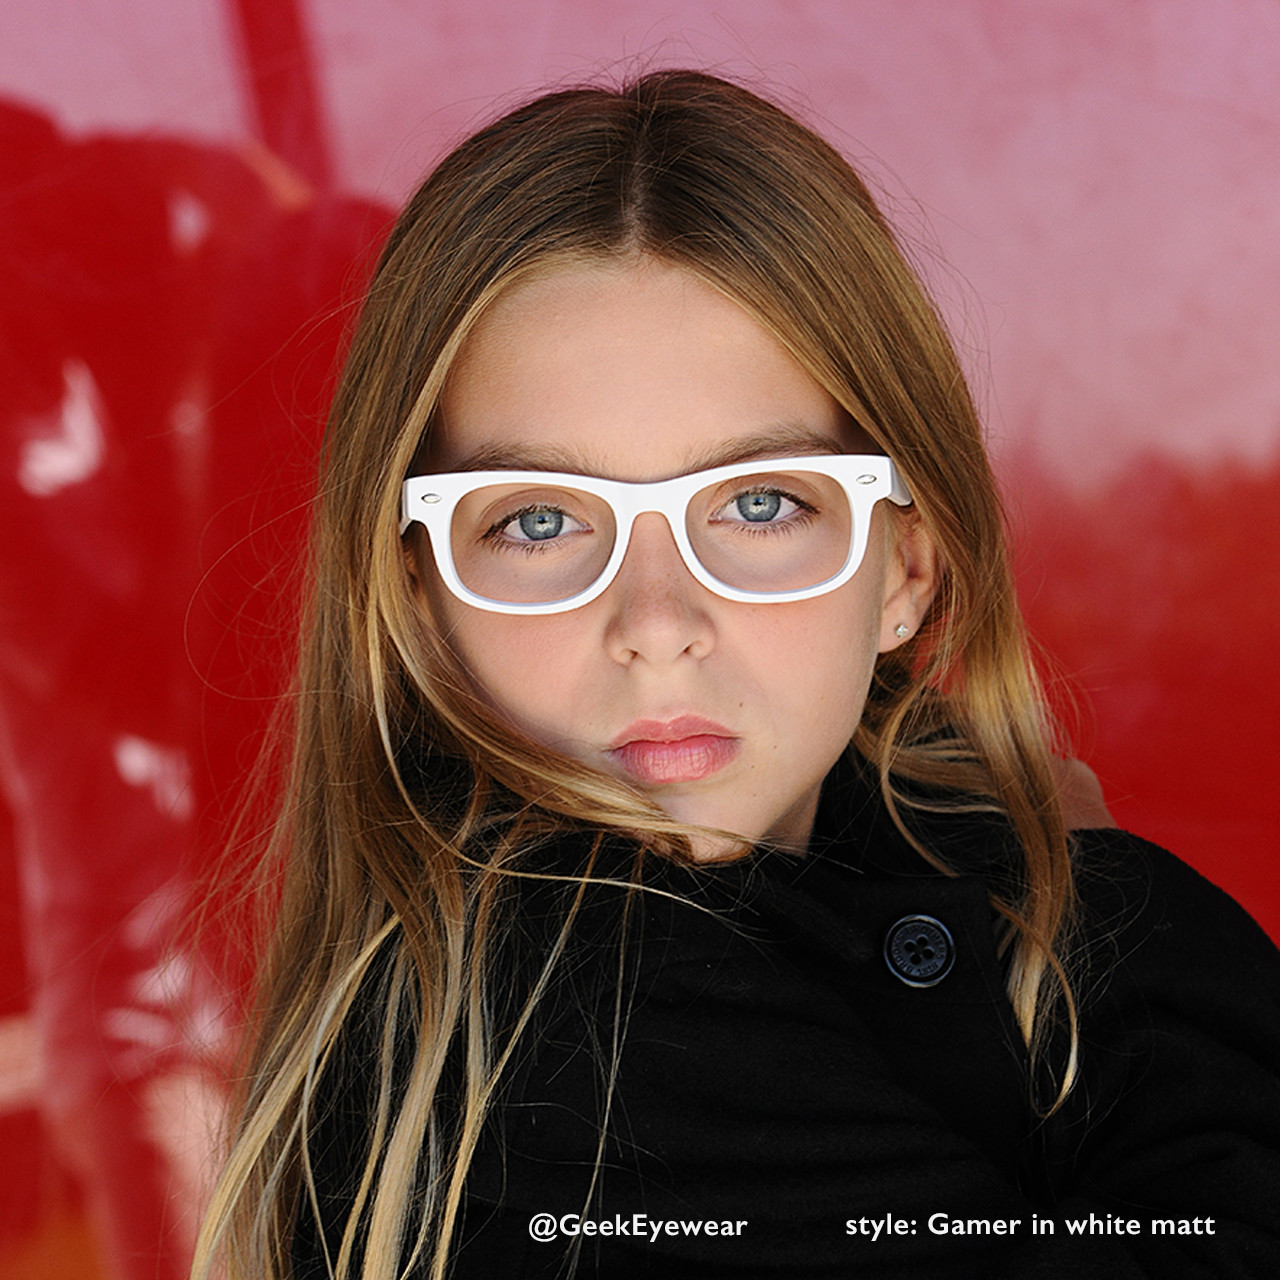 GEEK Eyewear GAMER Junior Geek Girl